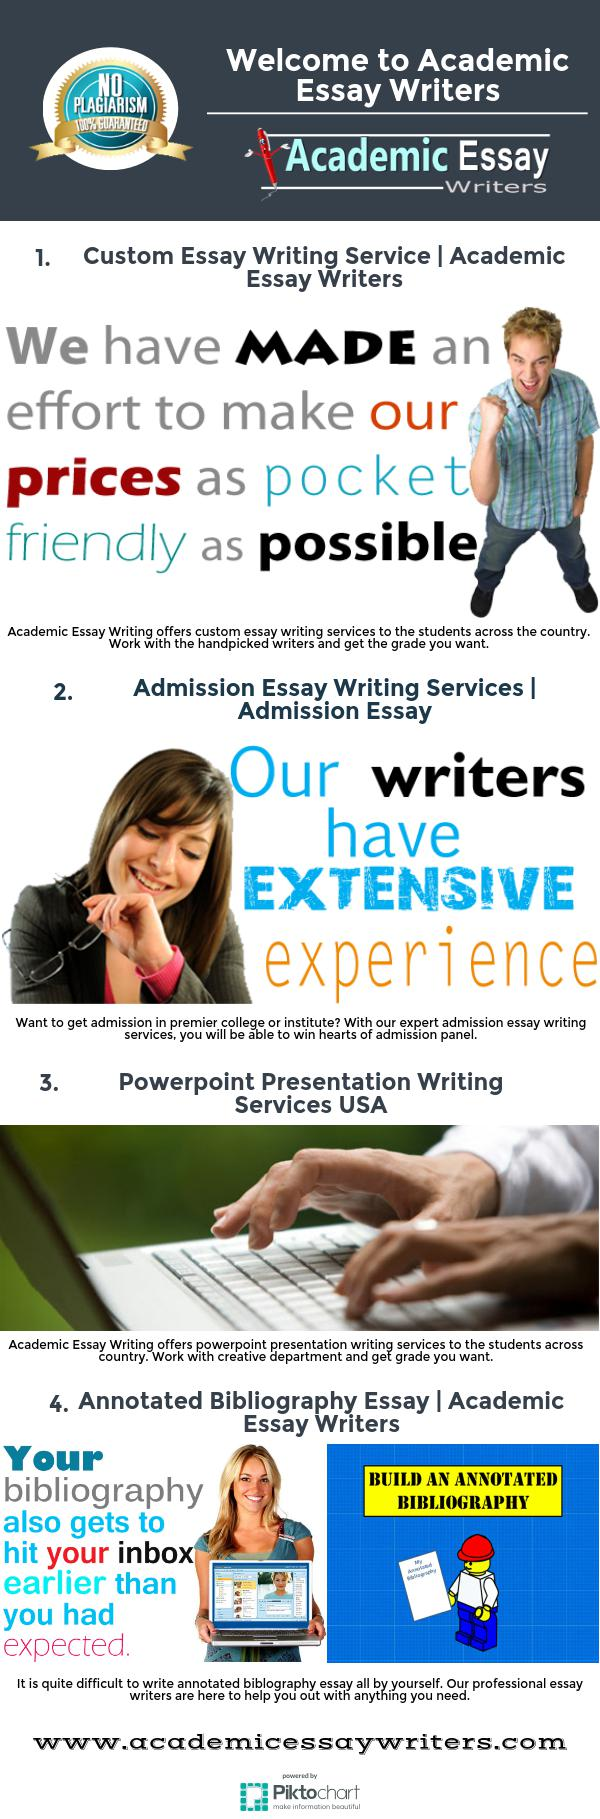 professional essay writing services piktochart visual editor